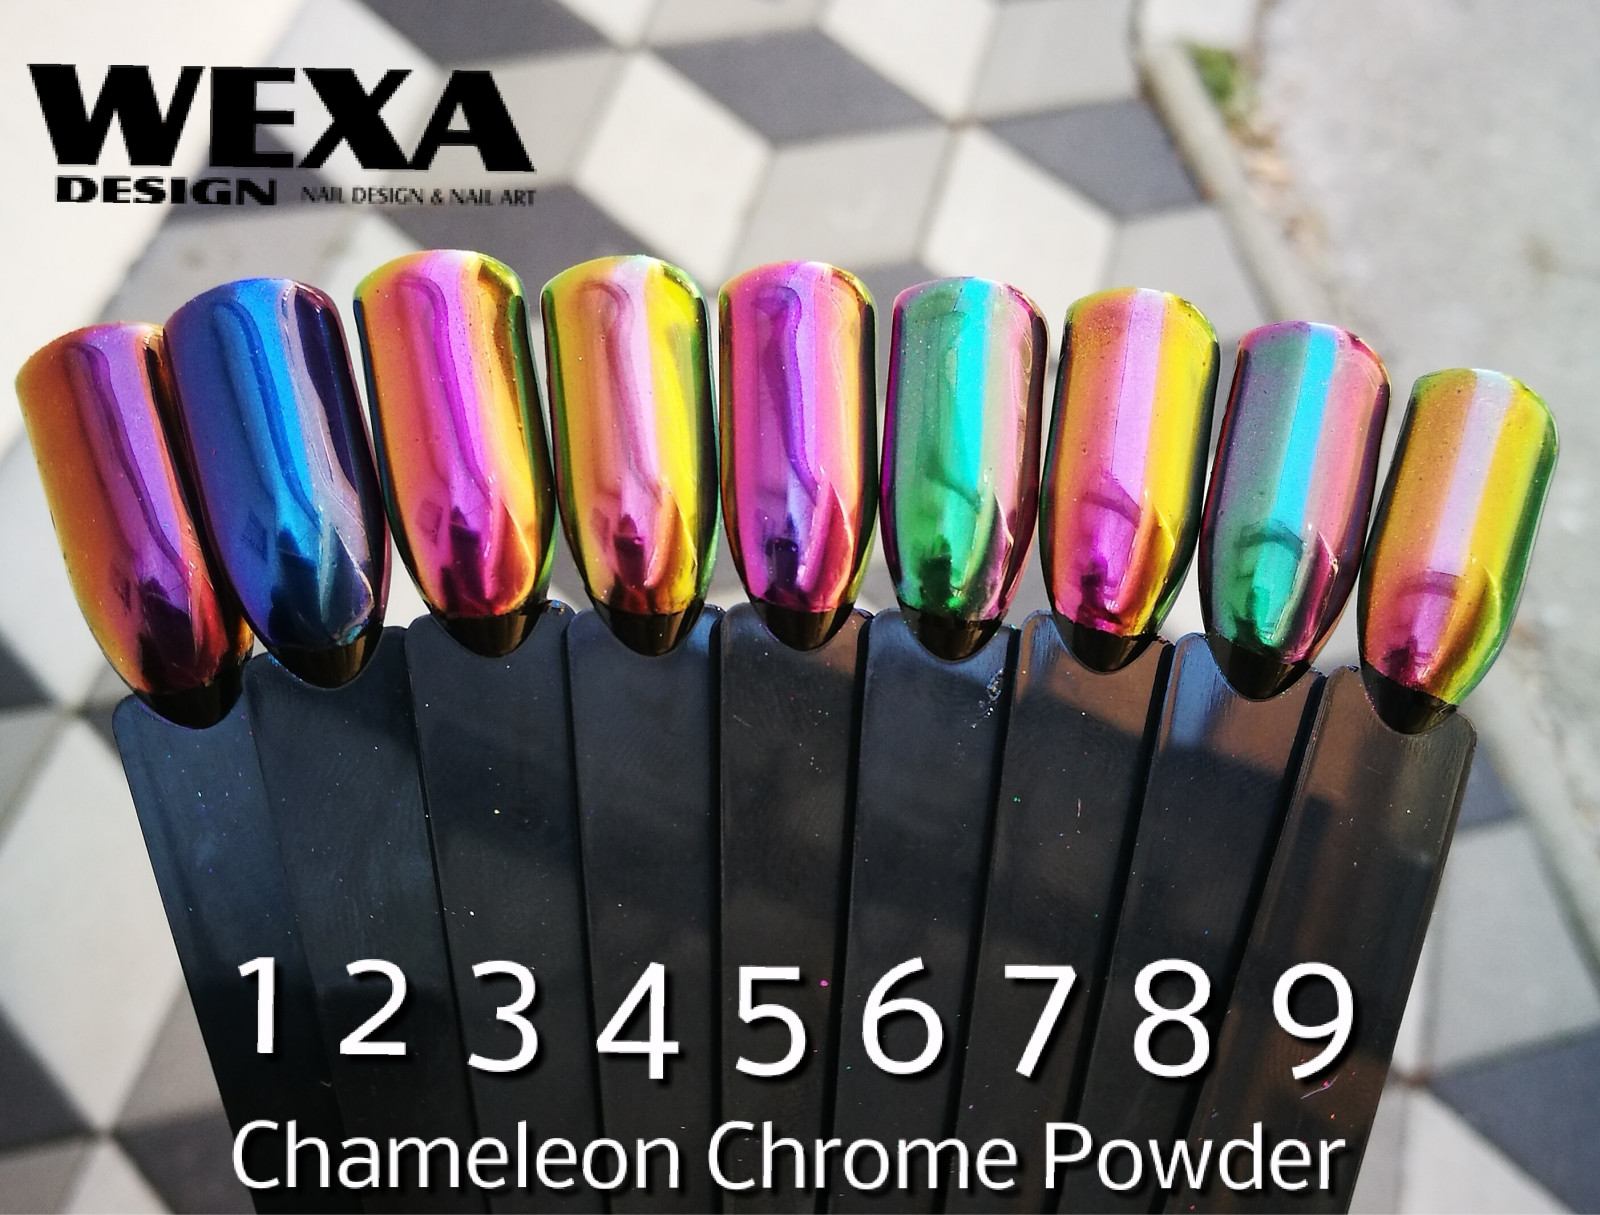 Chameleon Chrome Powder 1